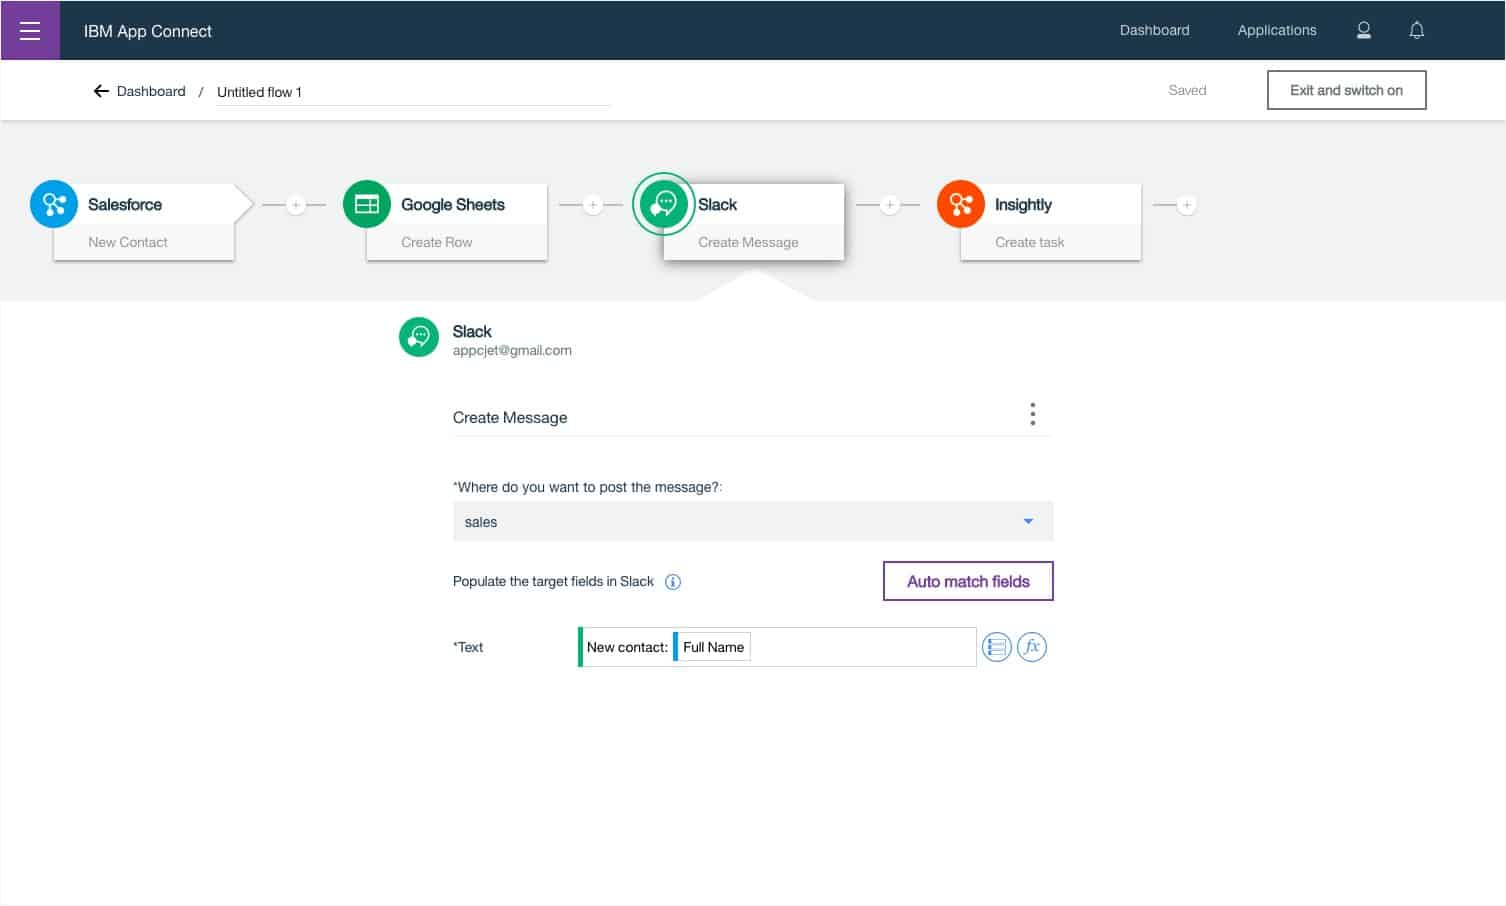 IBM App Connect Dashboard